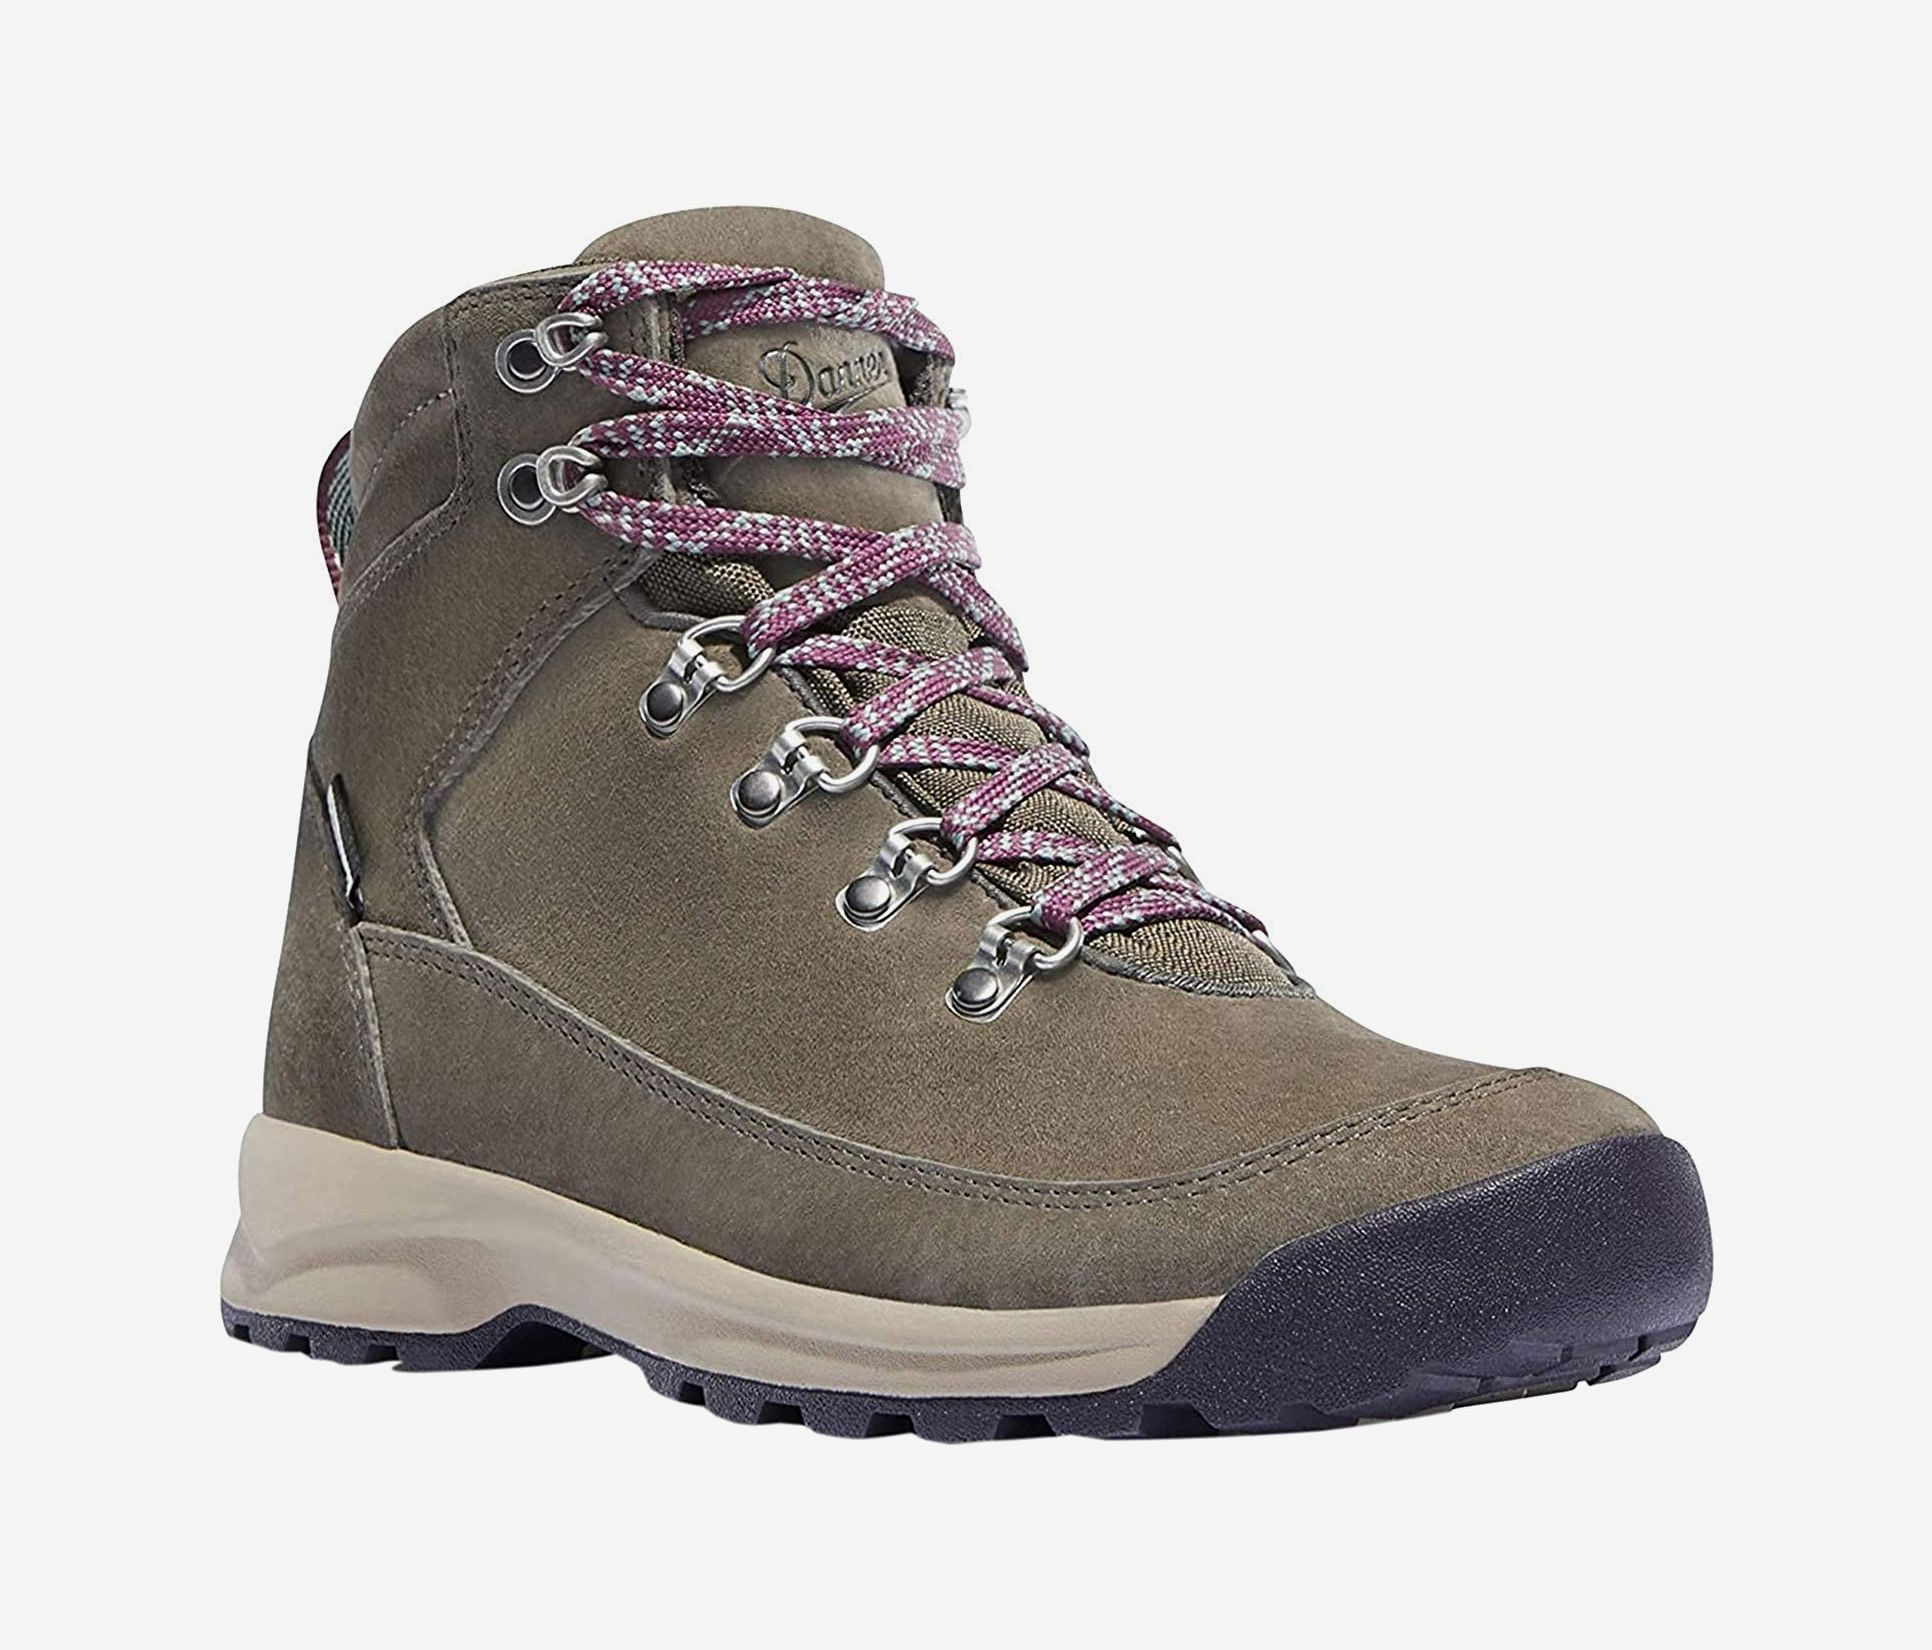 GRITION Womens Hiking Boots Waterproof Winter Walking Shoes Ankle Booties Lightweight Outdoor High Top Fashion Backpacking Lace Up Casual Warm Boot